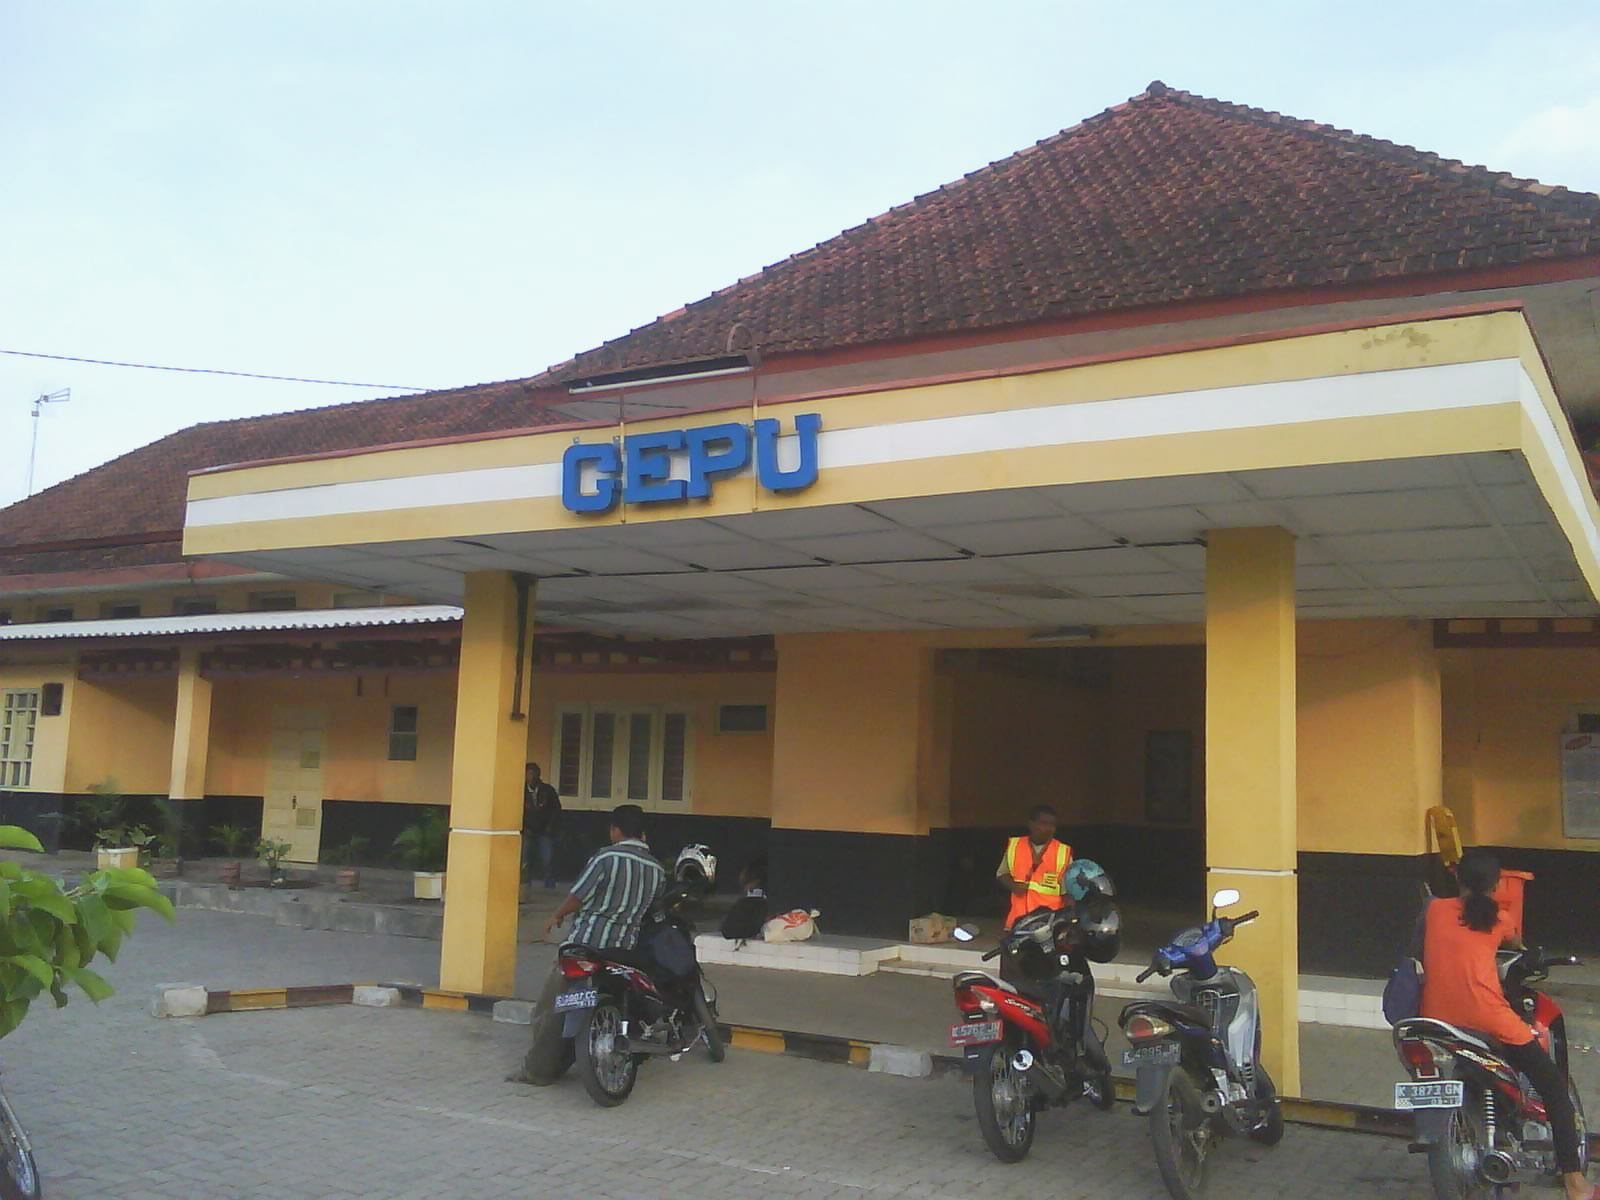 Cepu Indonesia  city images : Cepu Station | Cepu